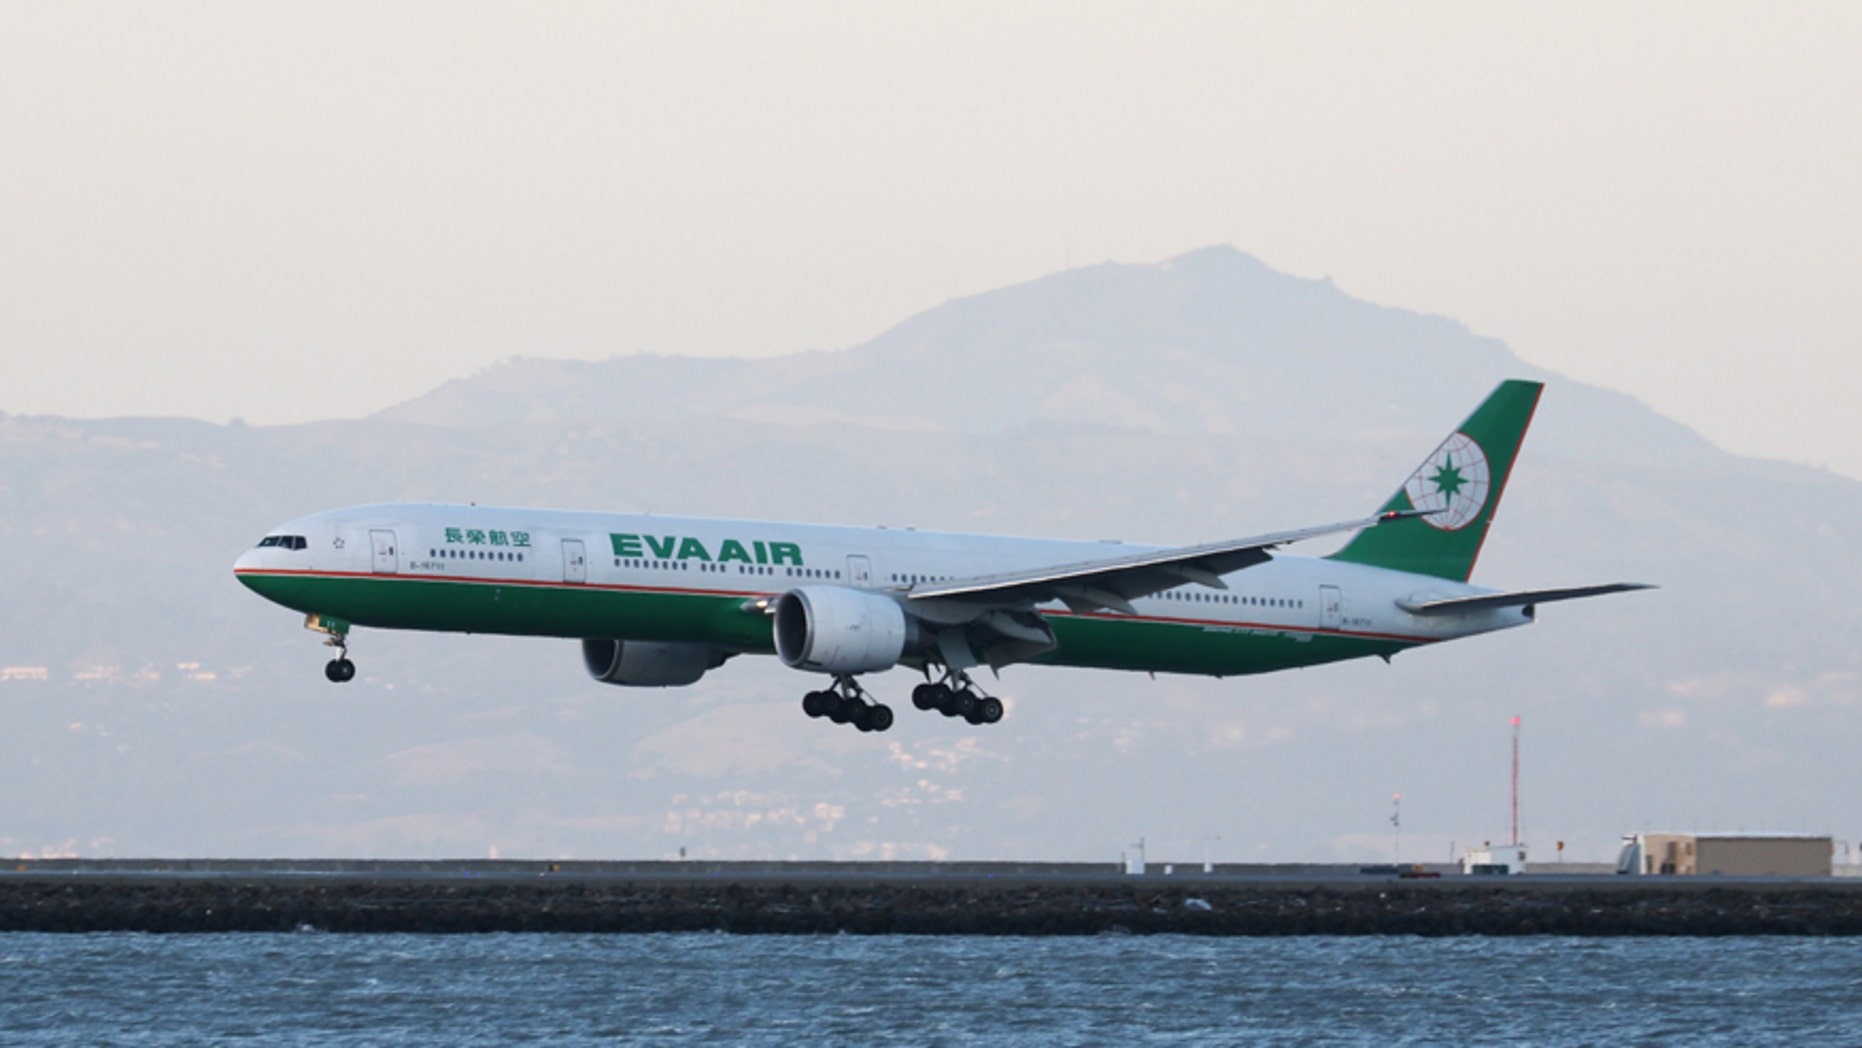 An Eva Air Boeing 777-300ER, with Tail Number B-16711, lands at San Francisco International Airport, San Francisco, California, April 11, 2015.   REUTERS/Louis Nastro - RTX19W22